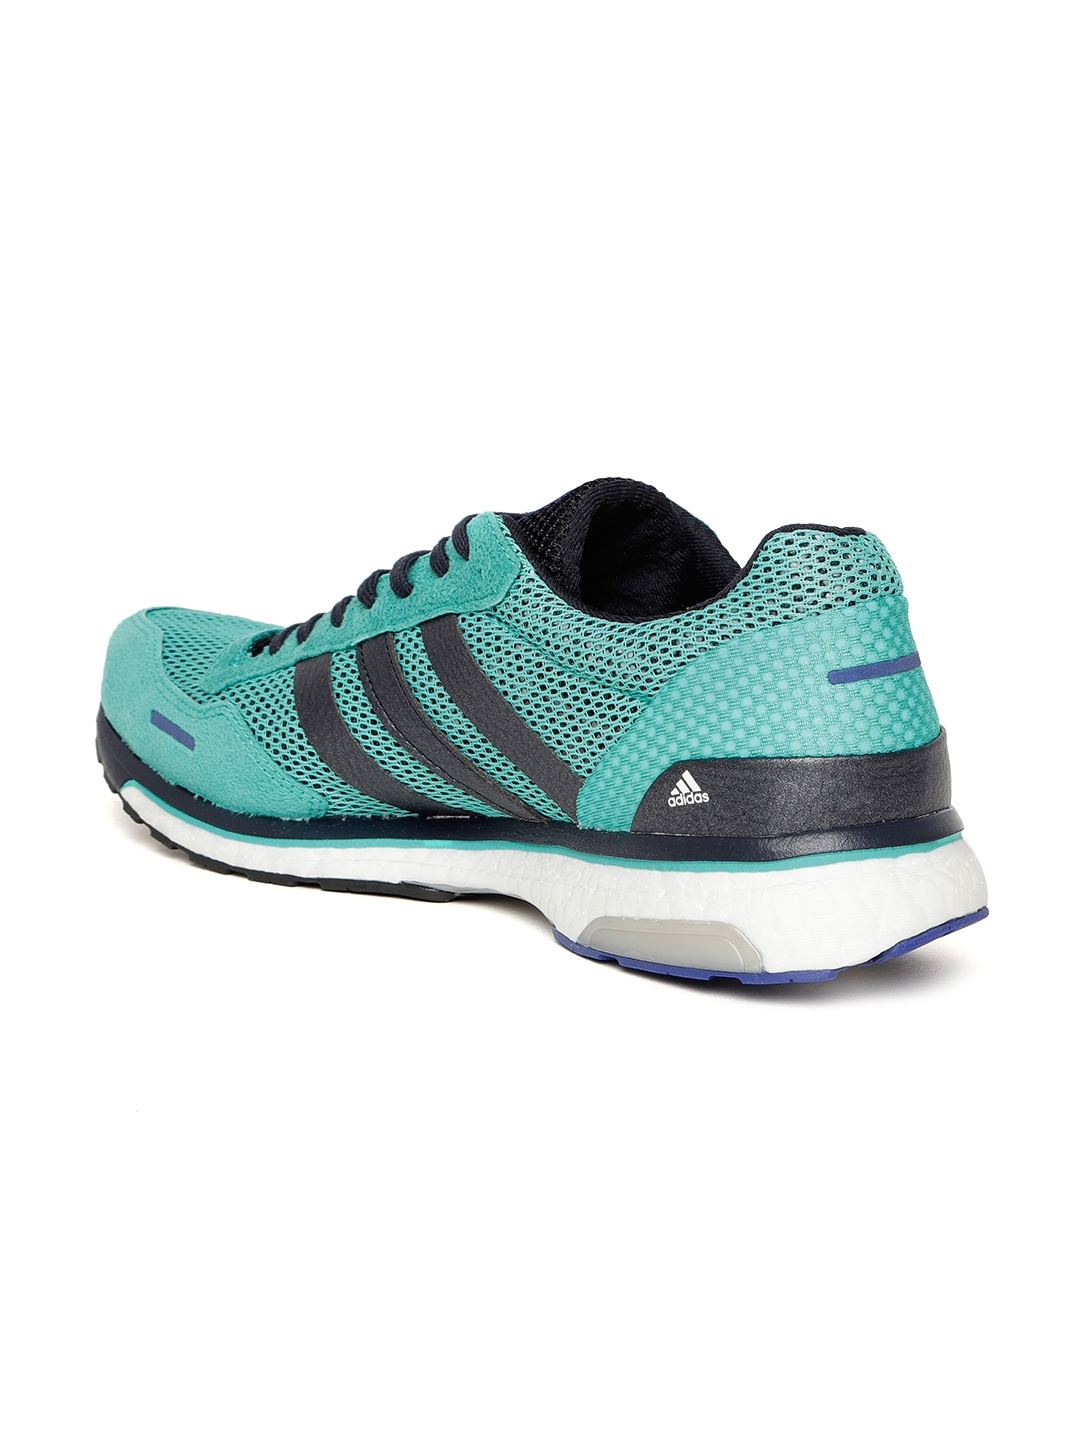 8a0588f7860 Buy ADIDAS Men Green Running Shoes - Sports Shoes for Men 6841709 ...